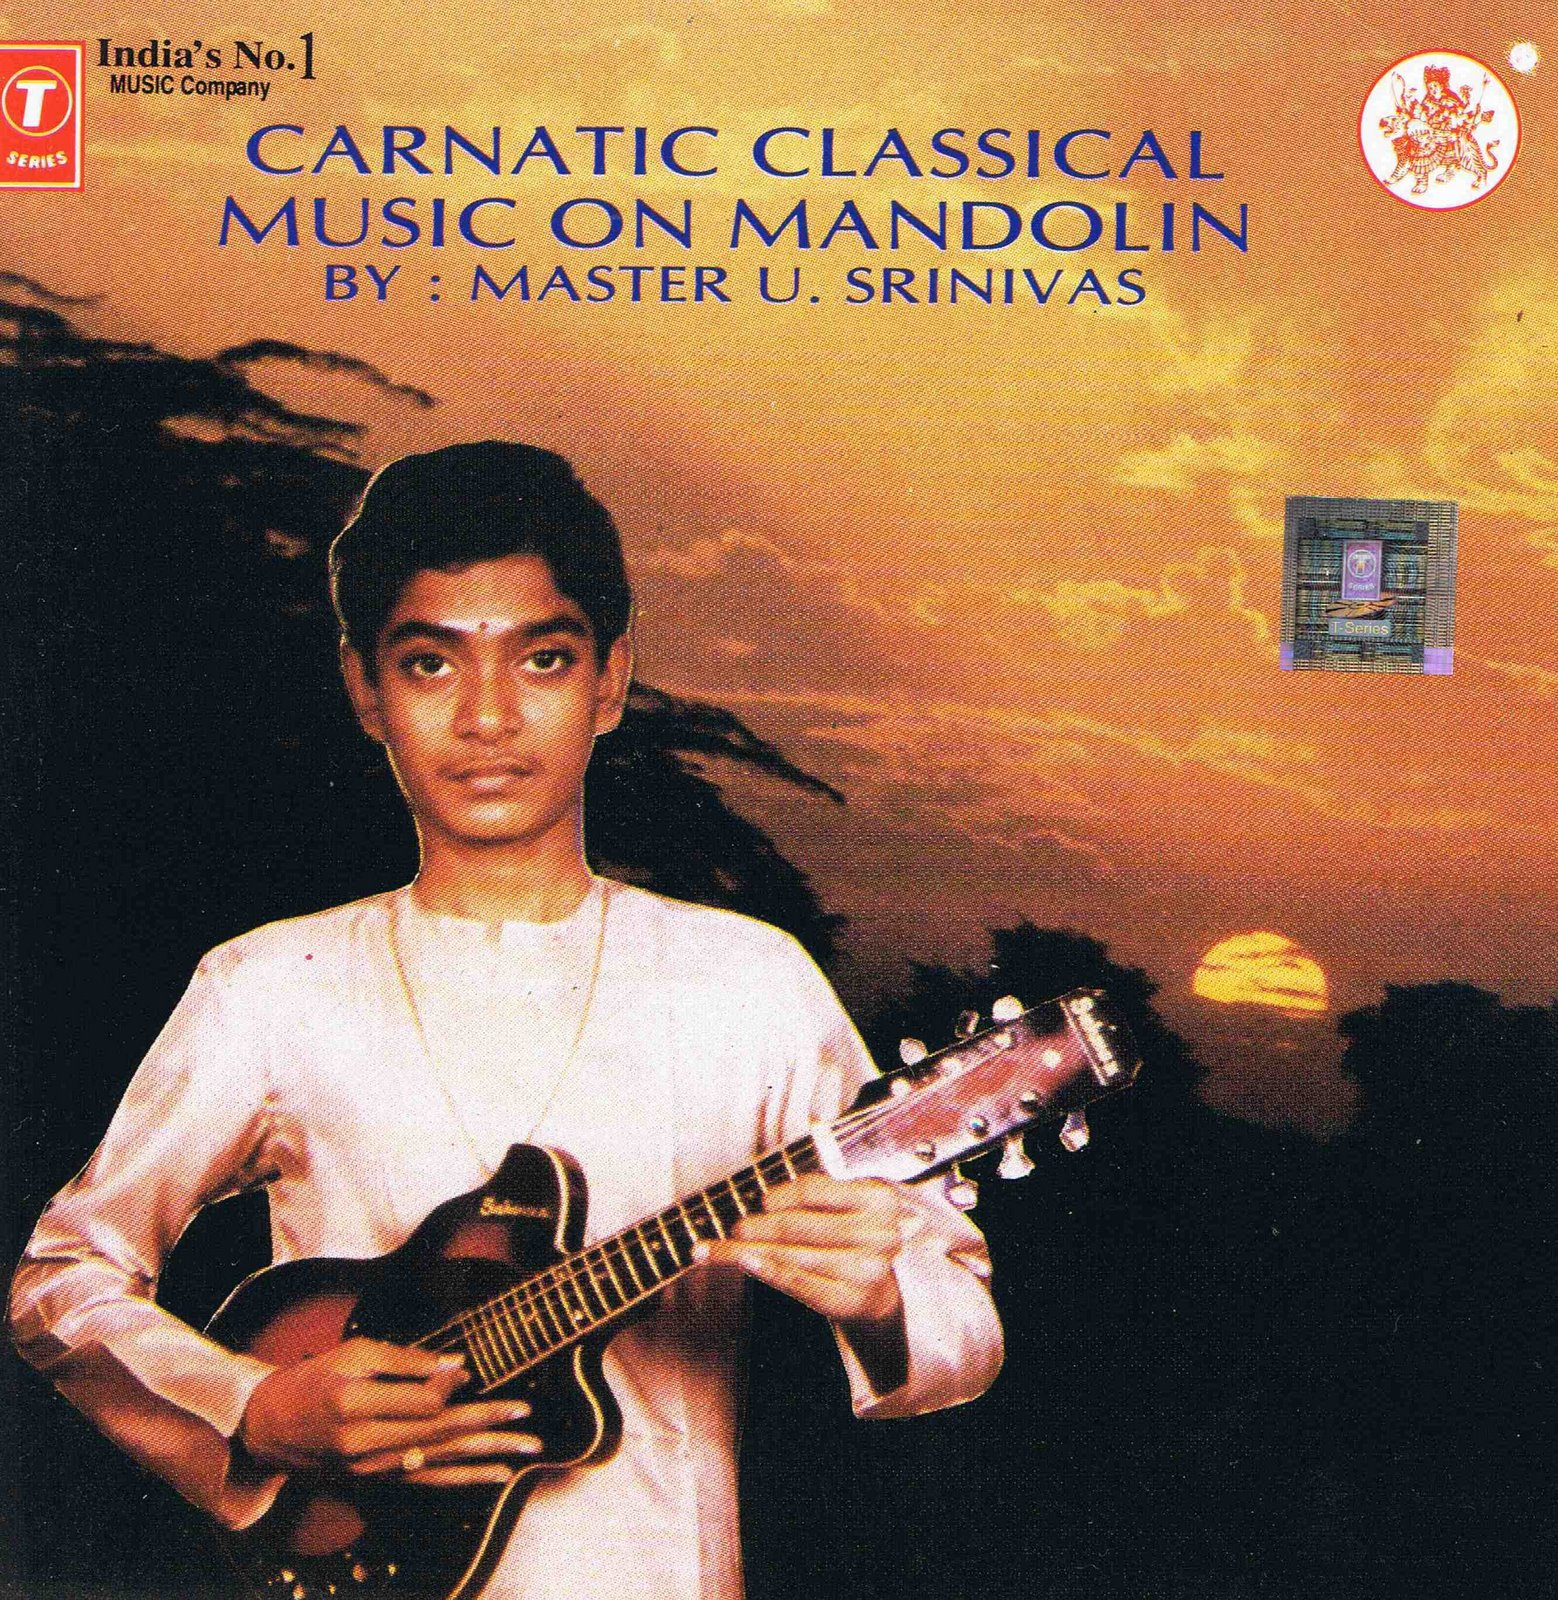 U. Srinivas - Carnatic Classical Music on Mandolin